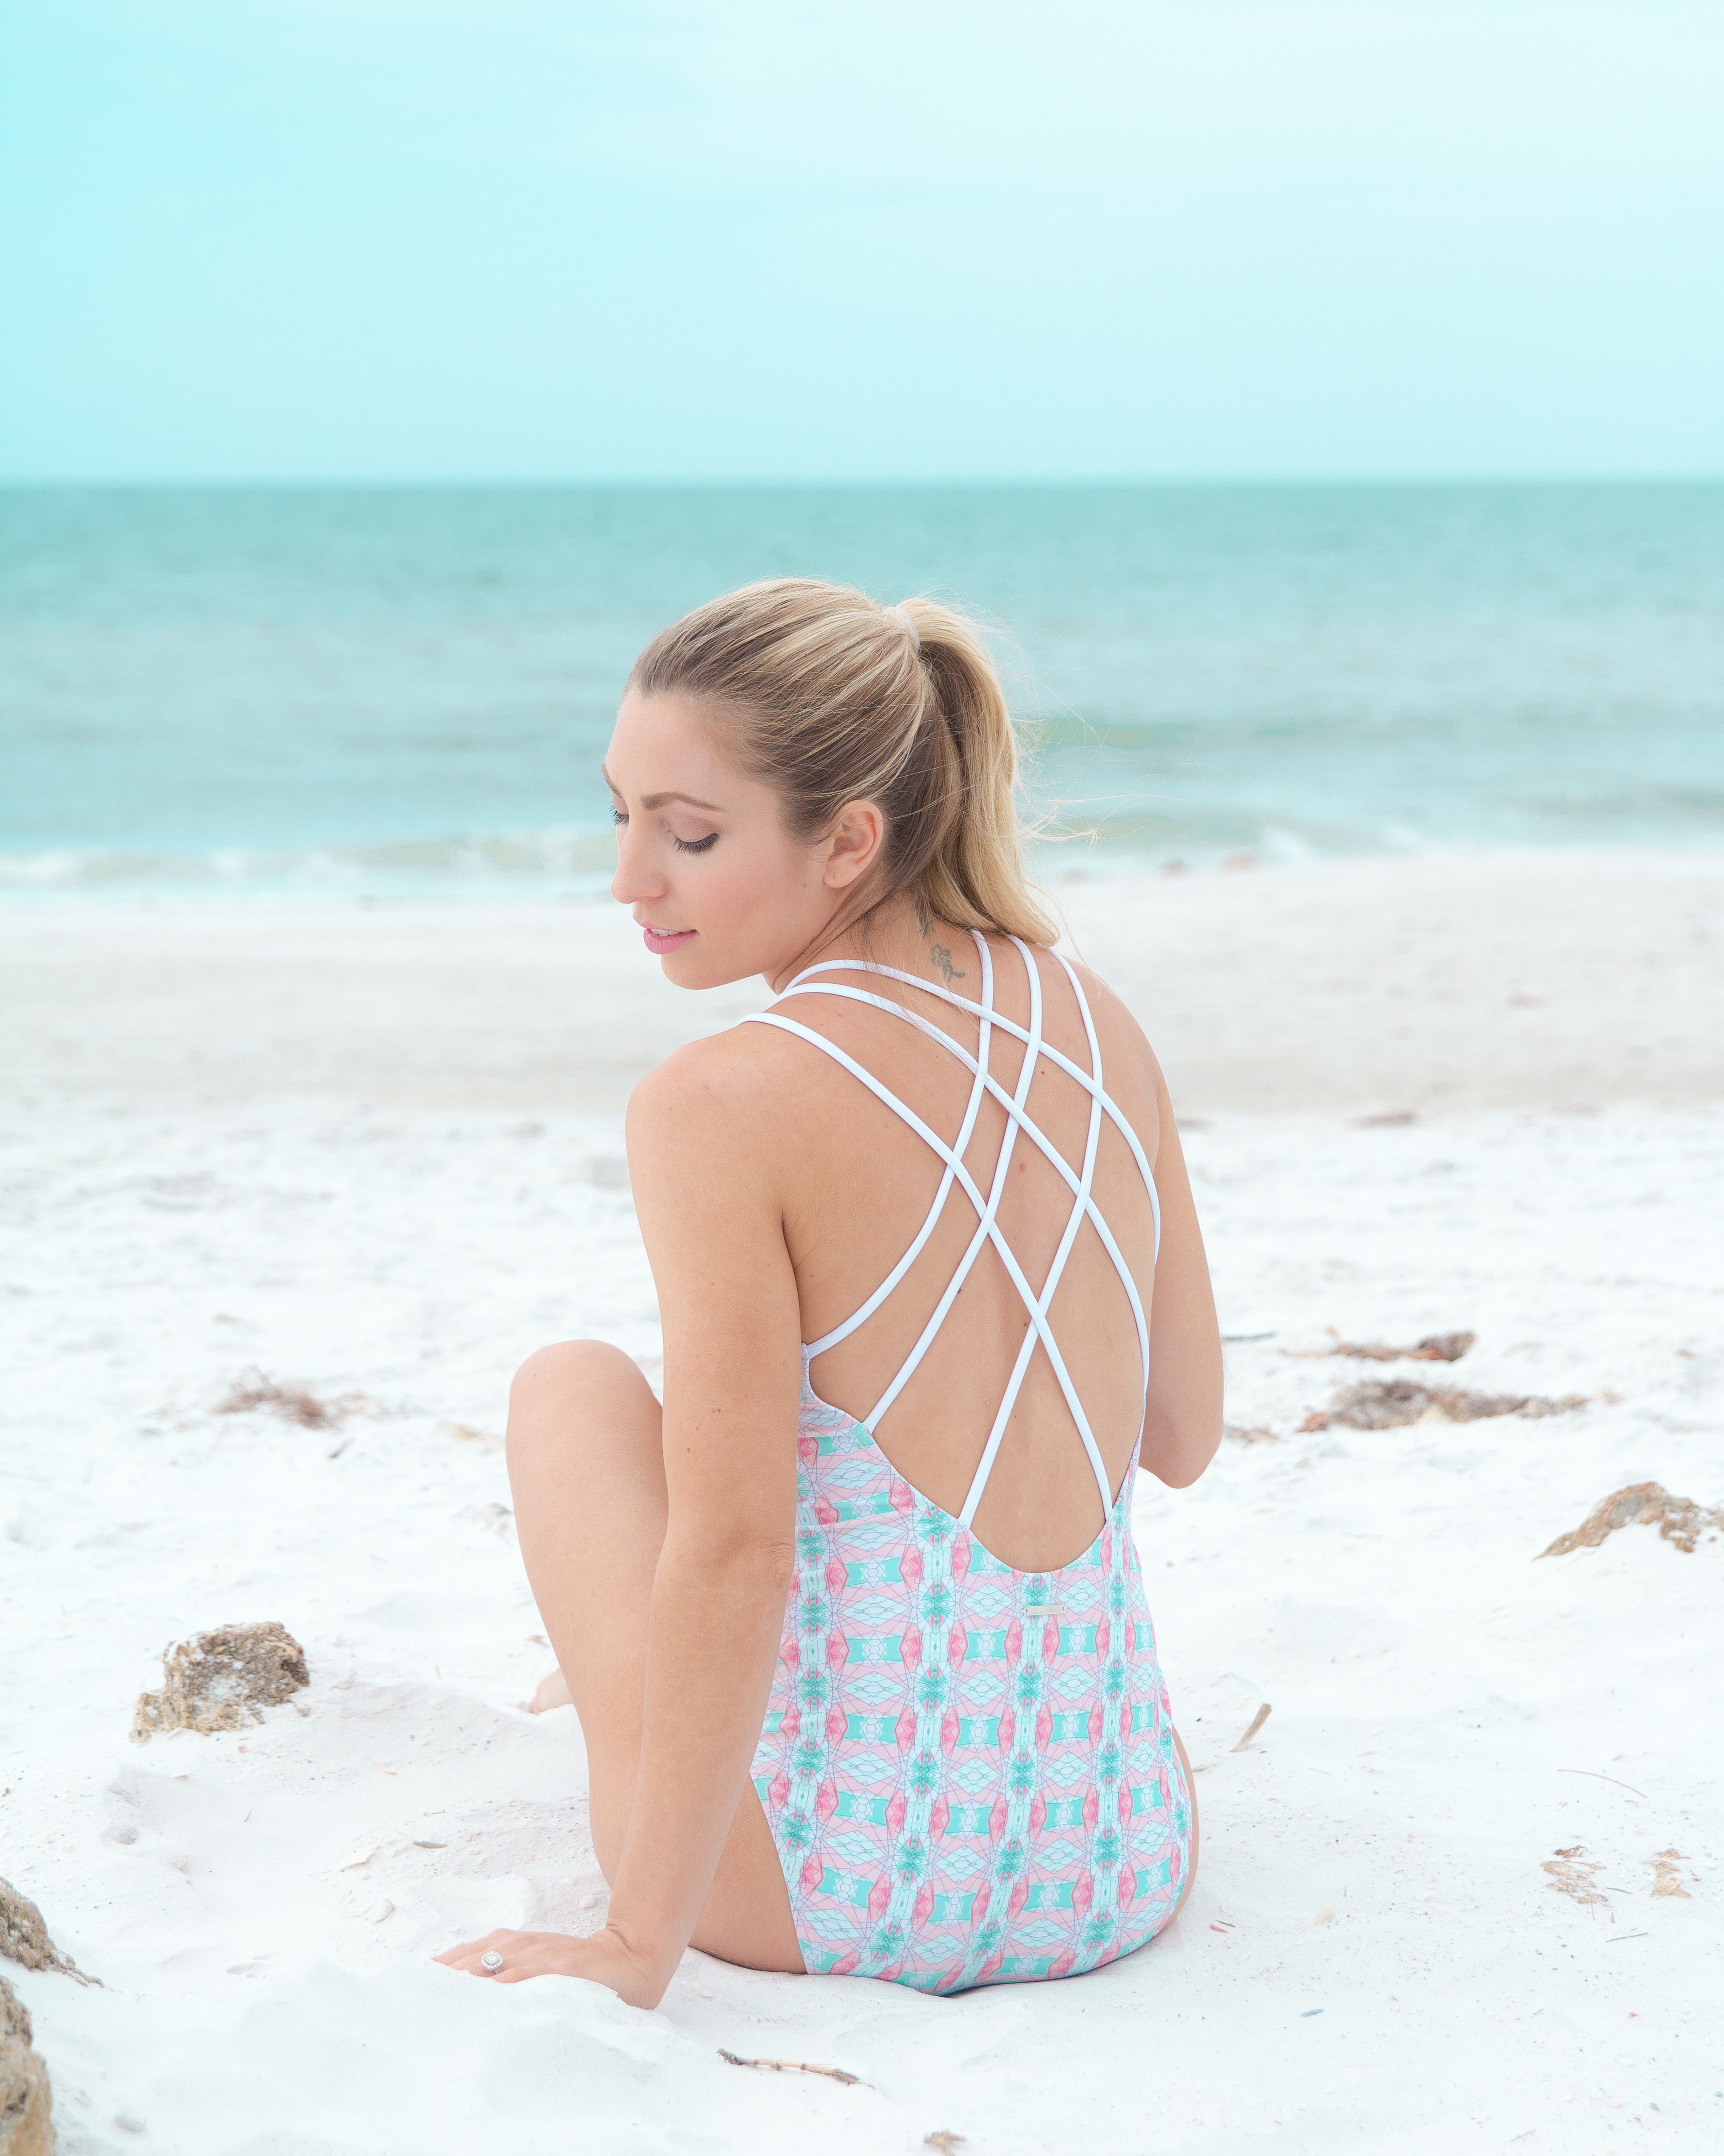 SWIMWEAR THAT PROTECTS WITH SPF